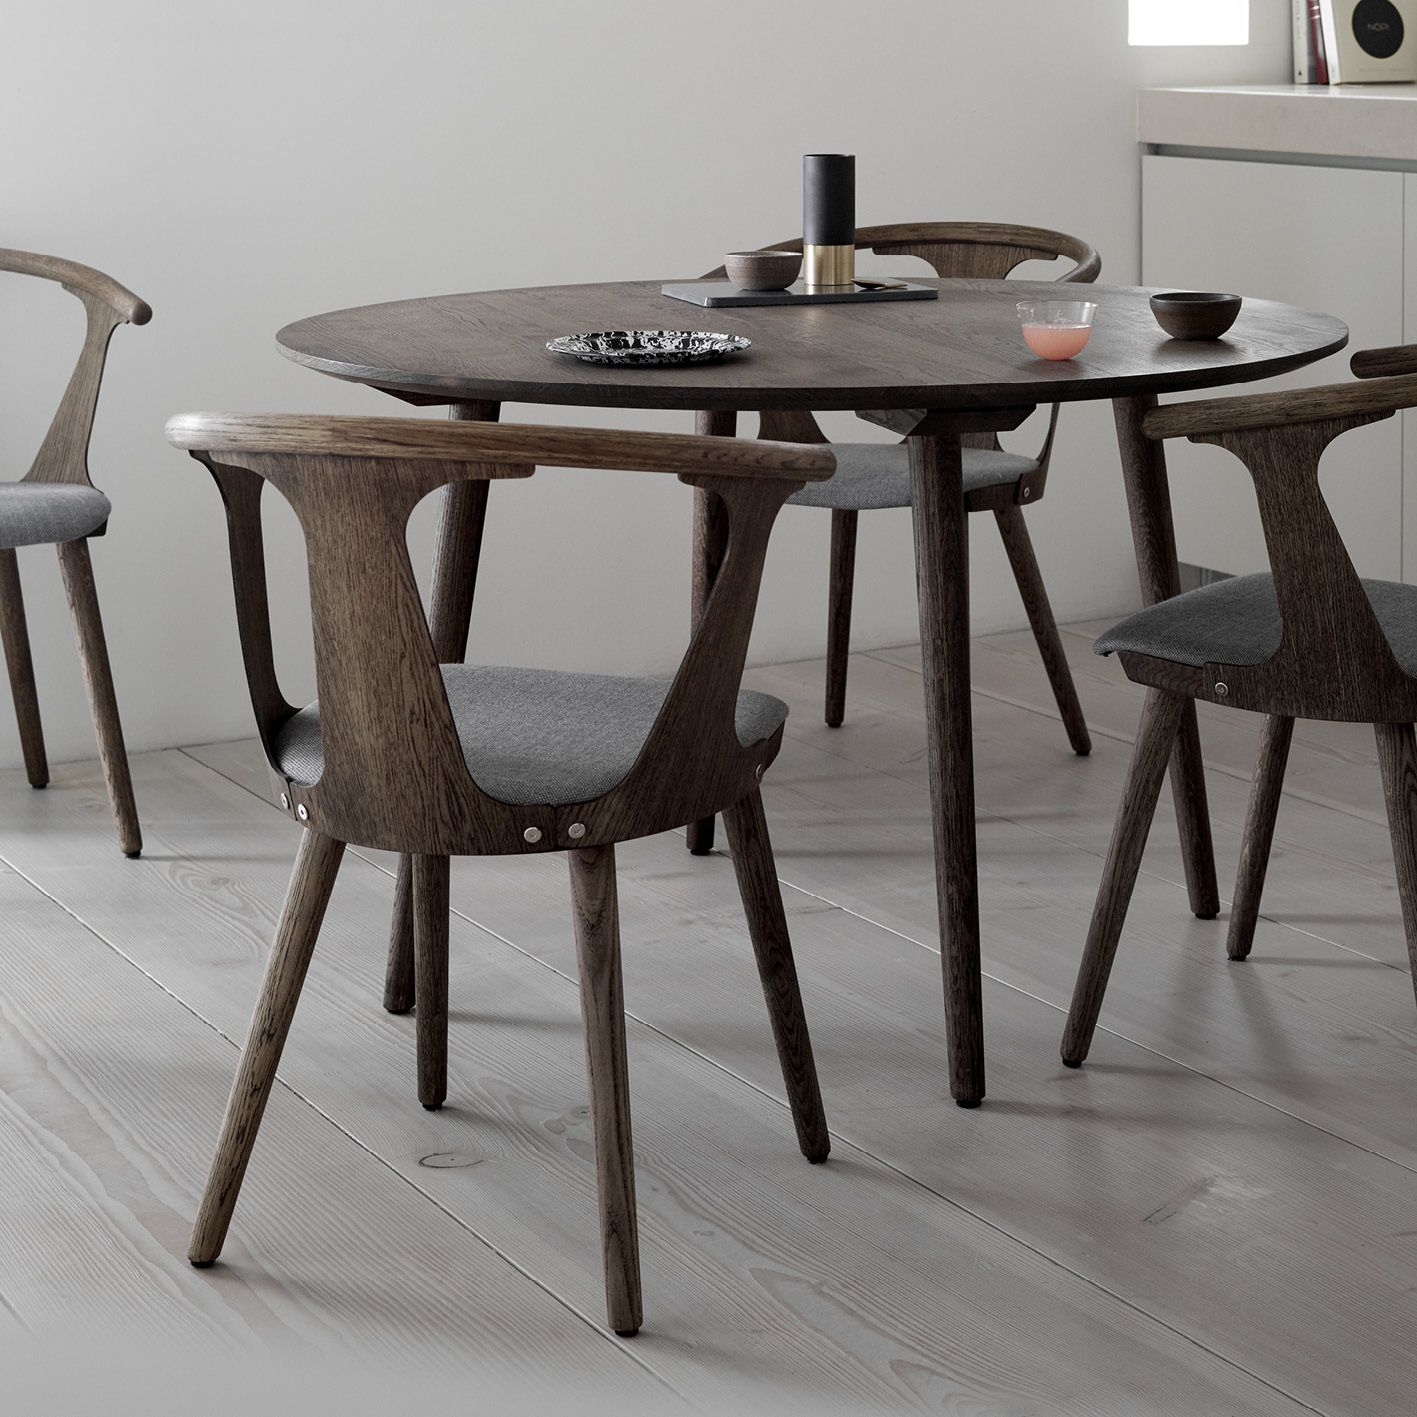 In Between Chair SK2 in Smoked oiled oak with Sunniva fabric by ...